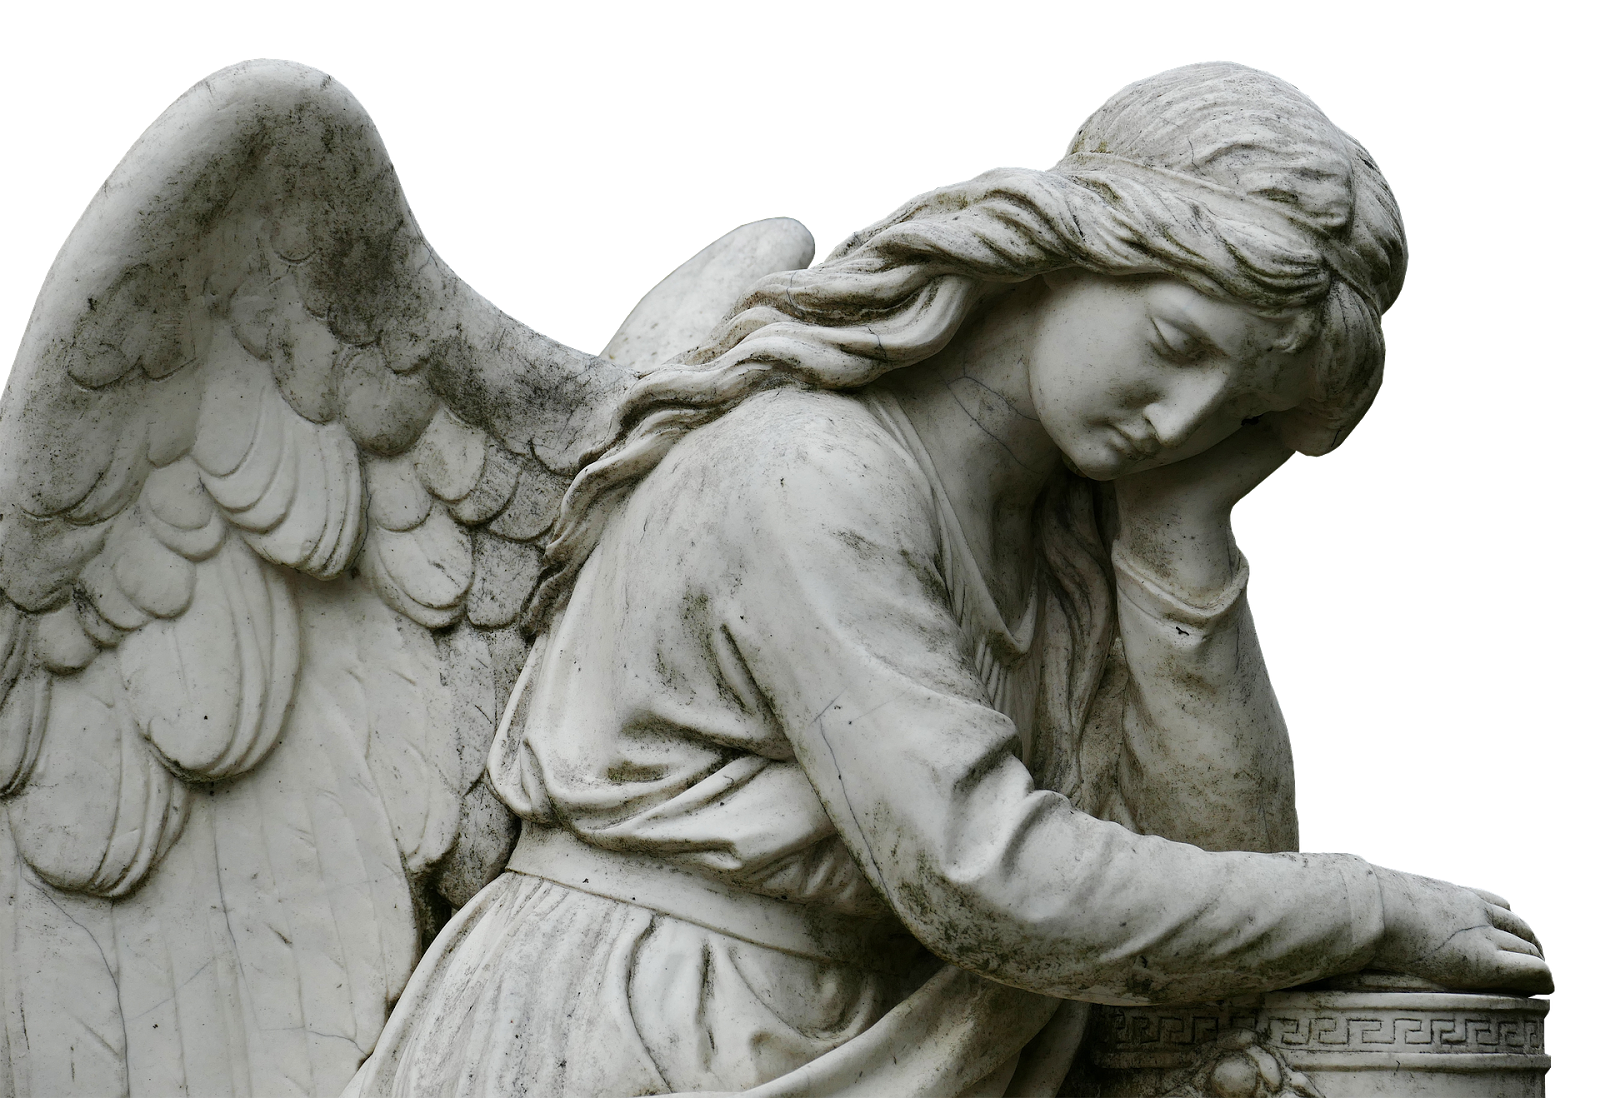 Stone angels png. Mourning angel sculpture statue